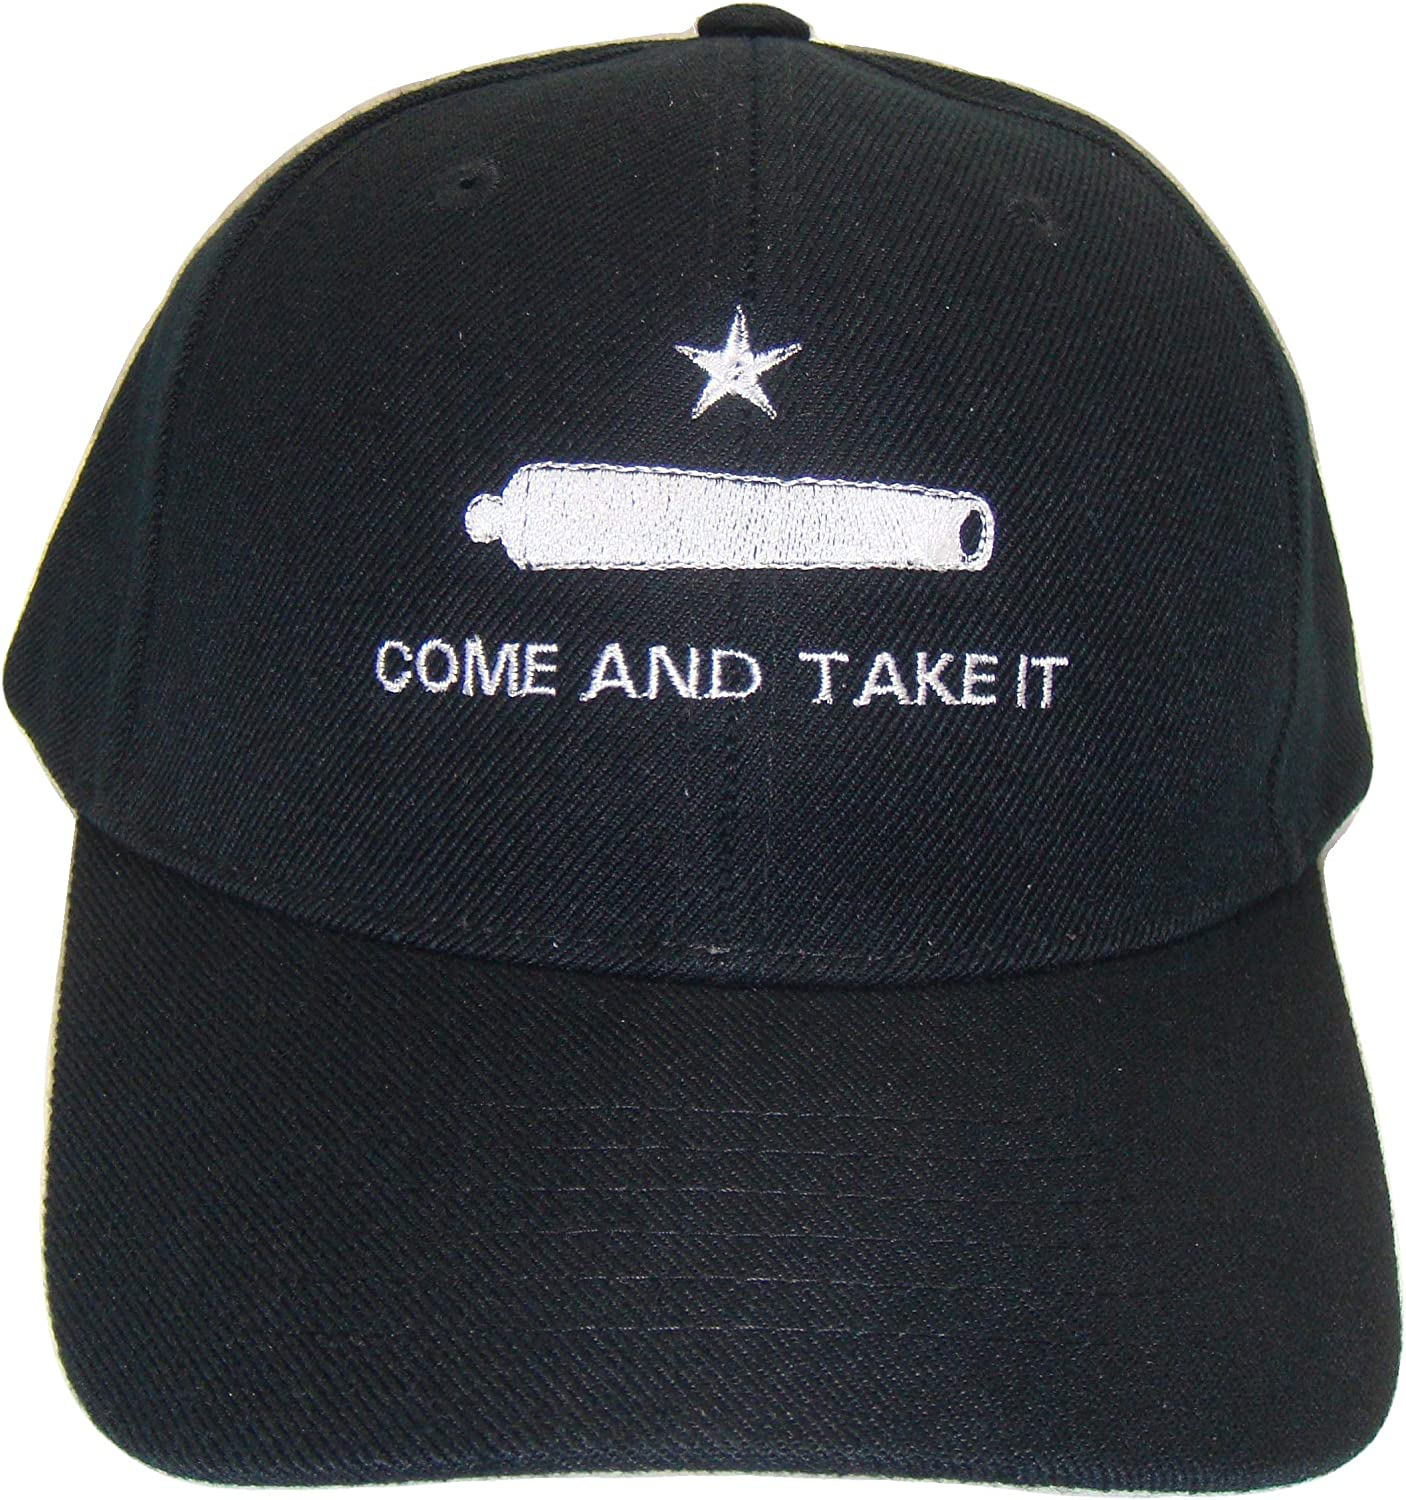 The Hat Shoppe Come and Take It Adjustable Baseball Cap (One Size, Black/White)